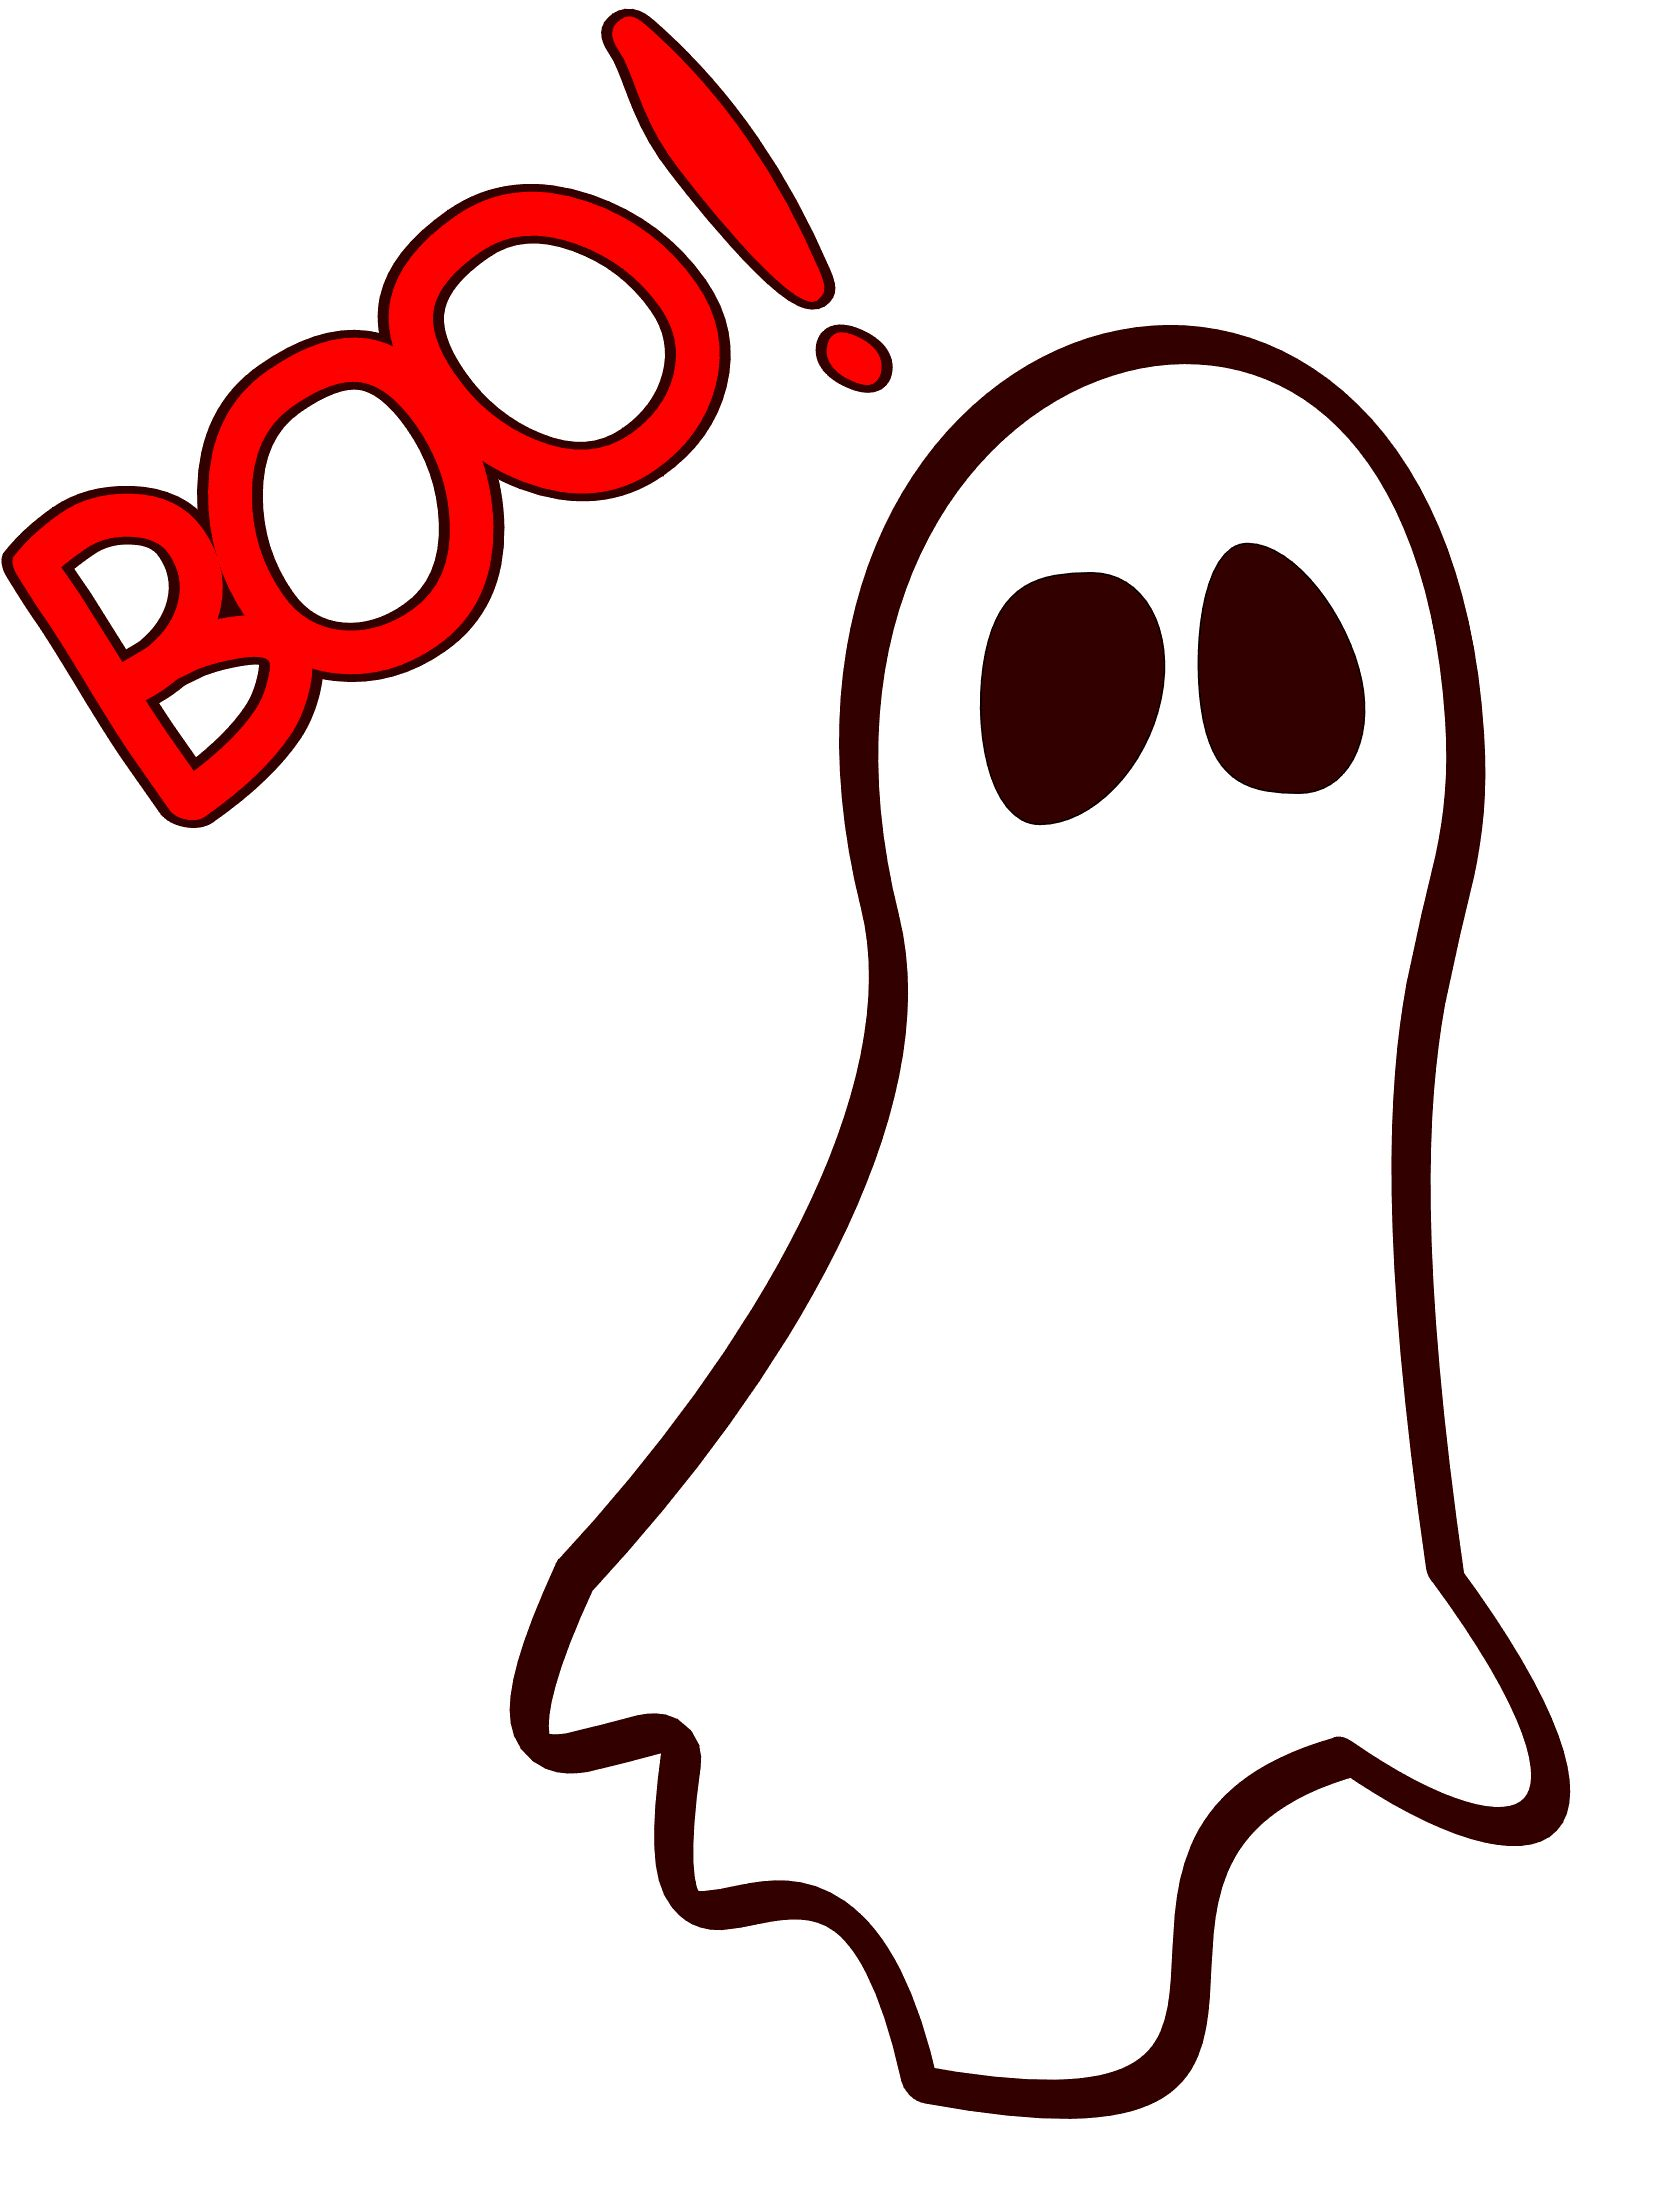 Haunted clipart boo #10949 FreeClipart Images Saying Clip